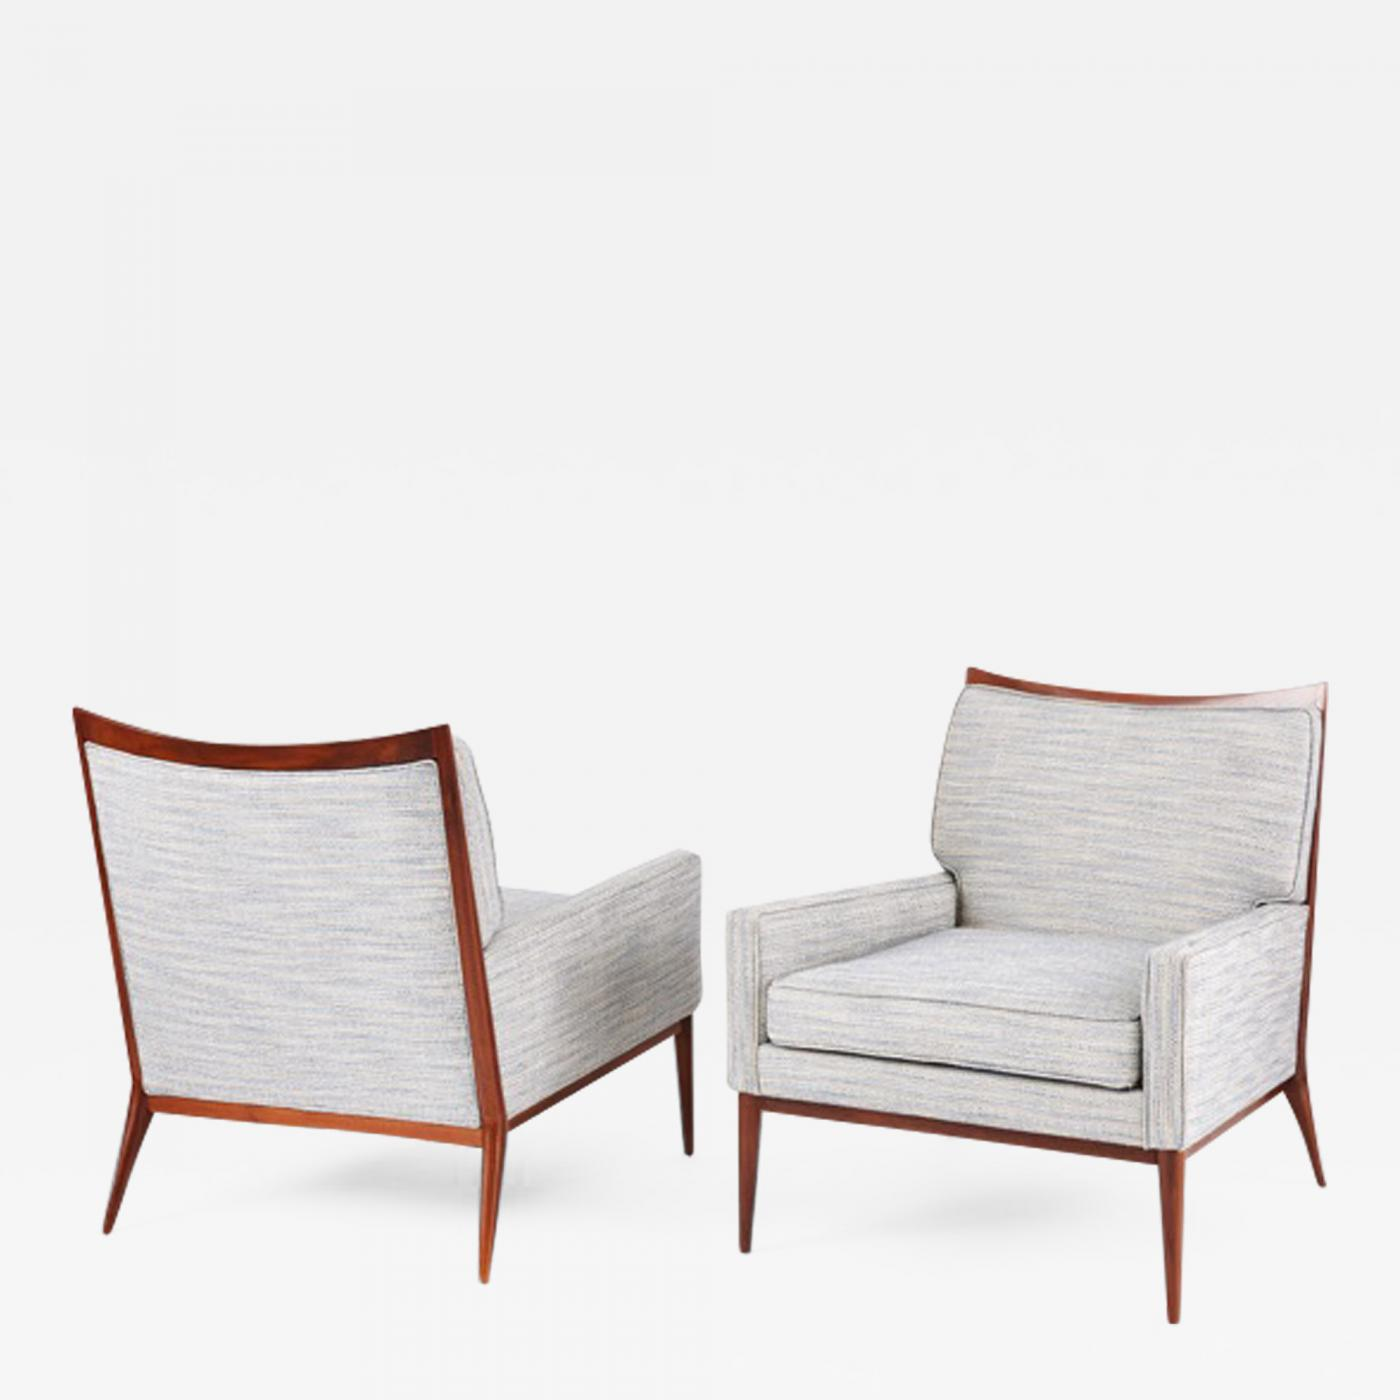 Paul Mccobb Chairs Paul Mccobb Pair Of Paul Mccobb Lounge Chairs